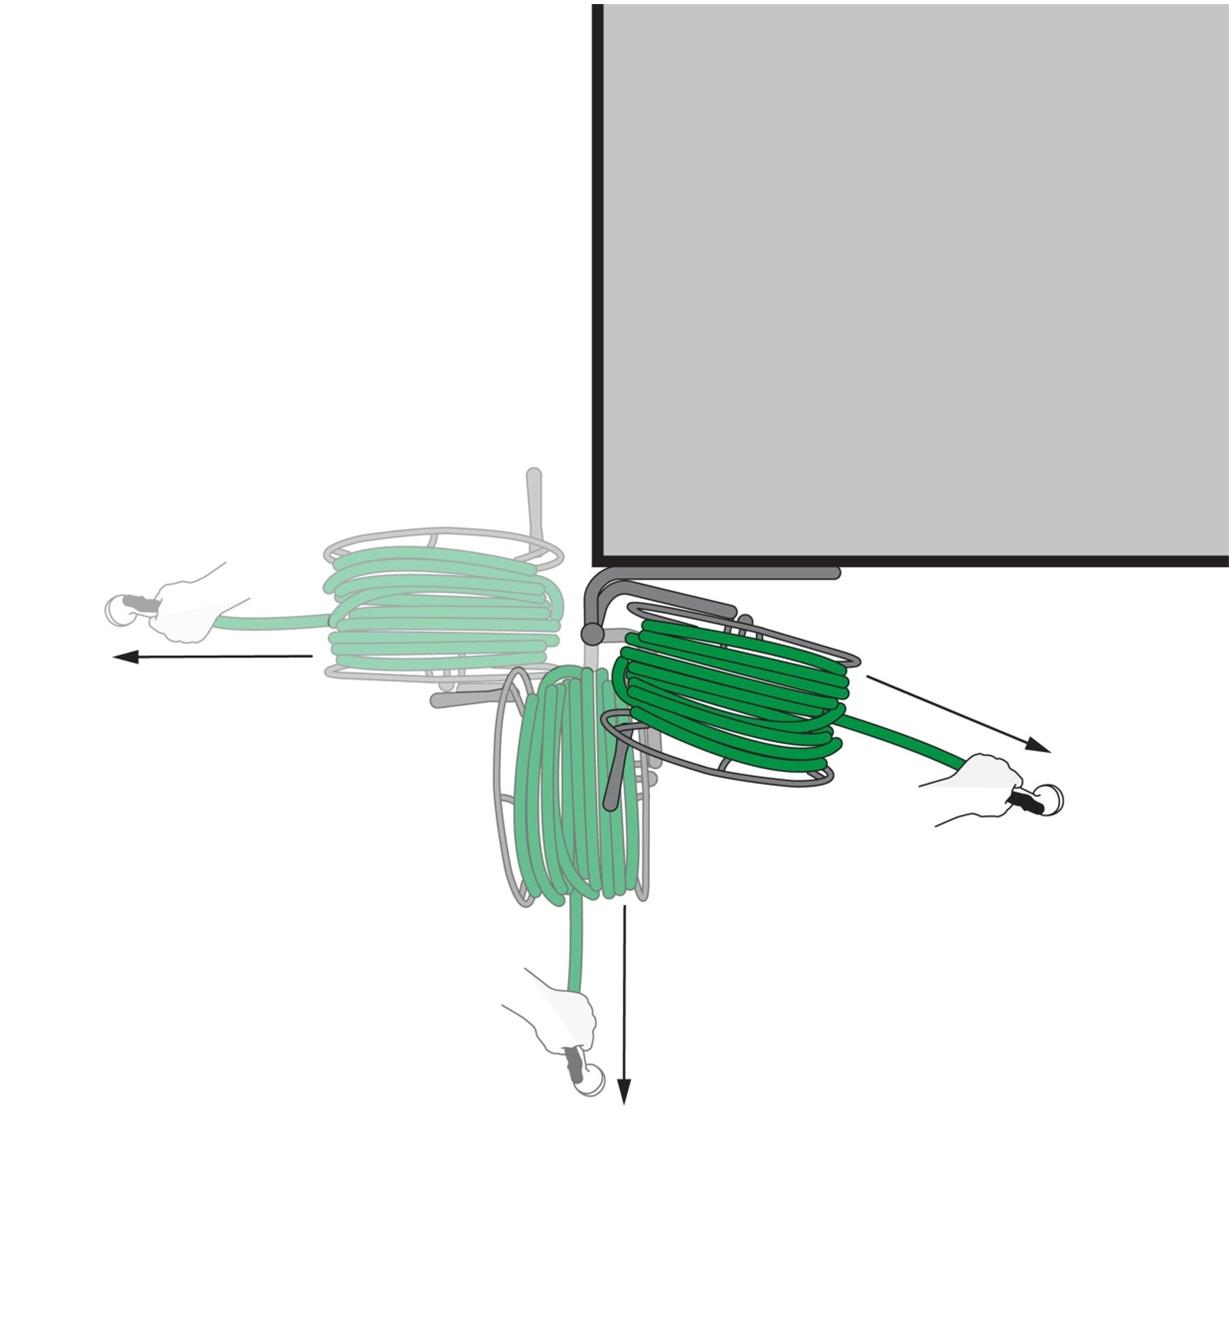 Illustration shows top view of hose reel mounted to corner of house, swiveling 180°